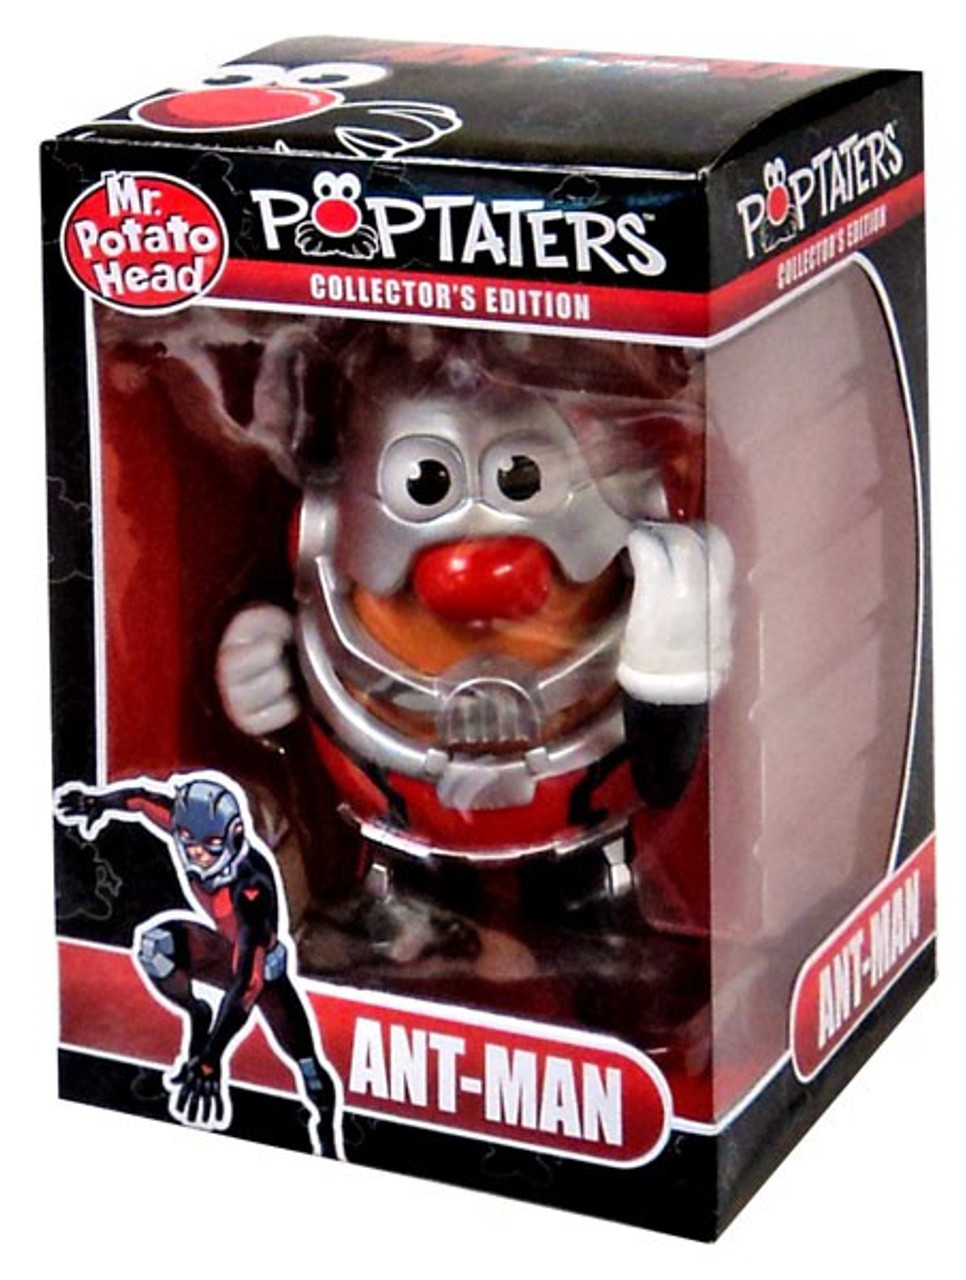 PPW TOYS MR POTATO HEAD MARVEL SPIDER MAN COLLECTORS EDITION FIGURE